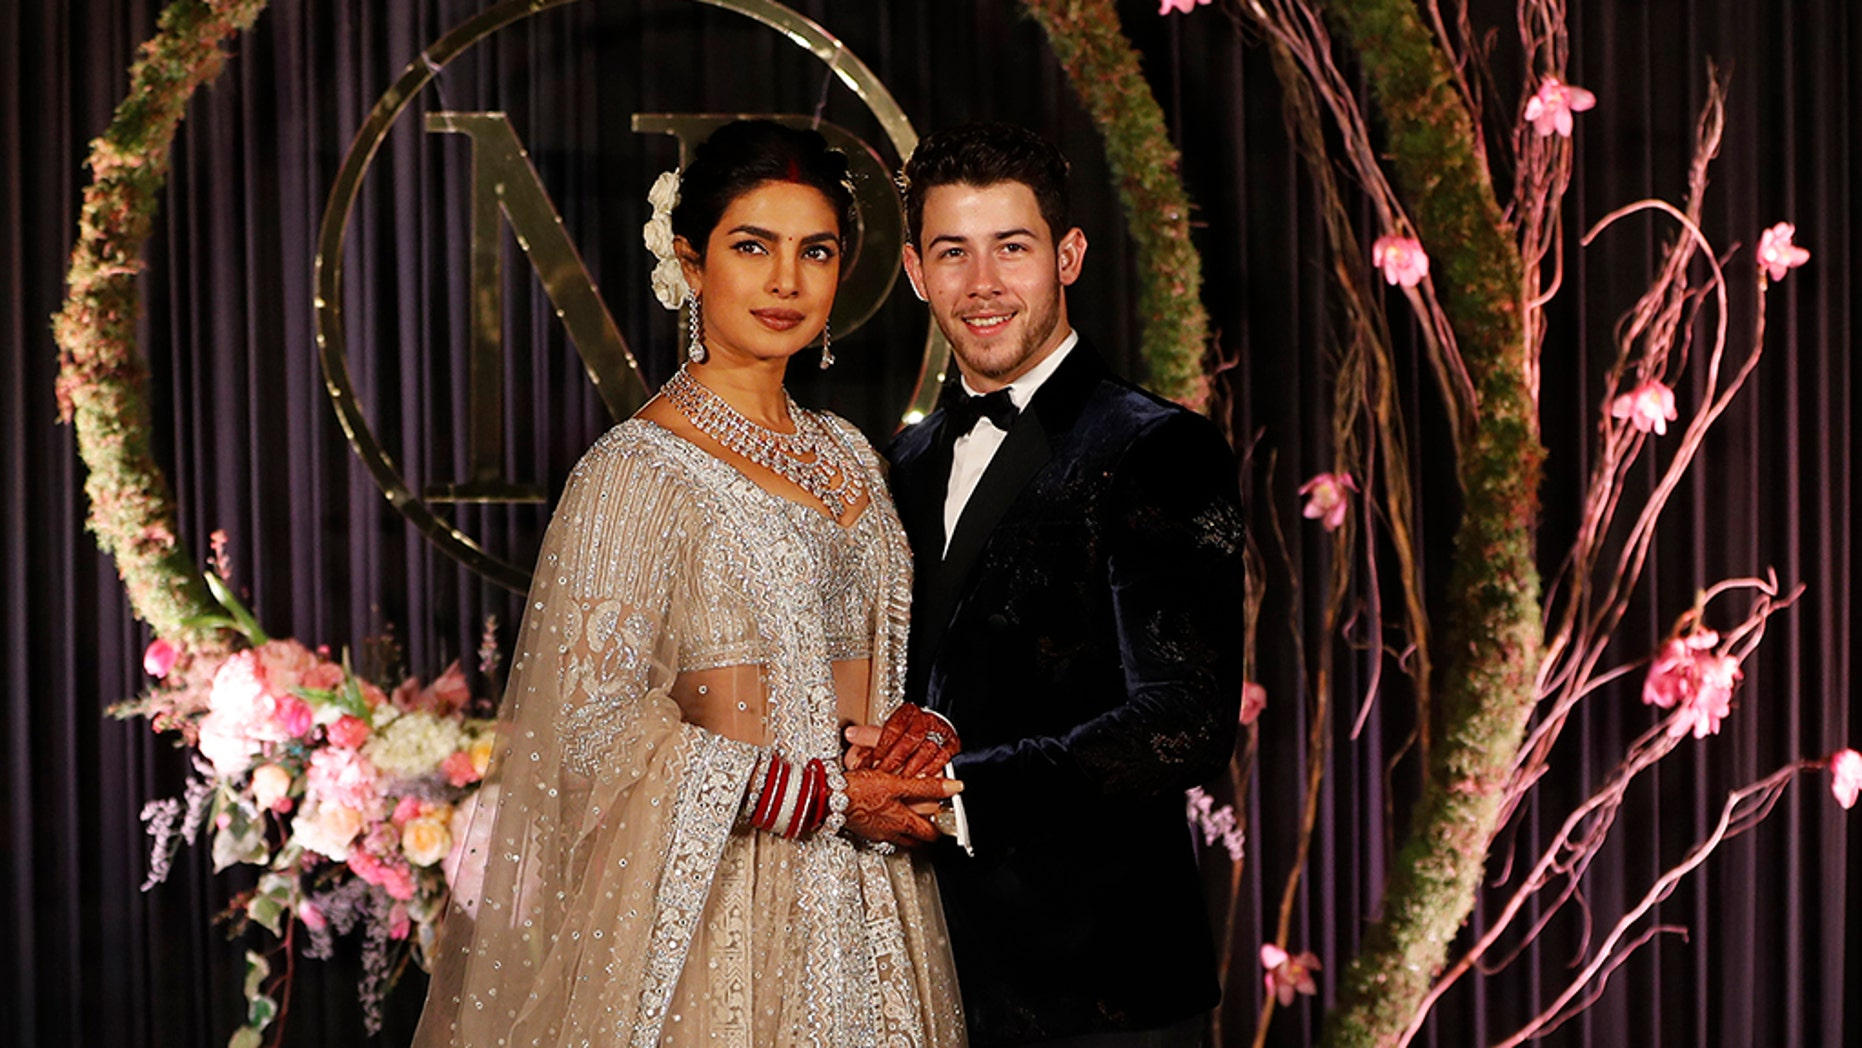 Bollywood actress Priyanka Chopra and musician Nick Jonas stand for photographs at their wedding reception in New Delhi, India, Tuesday, Dec. 4, 2018. (AP Photo/Altaf Qadri)